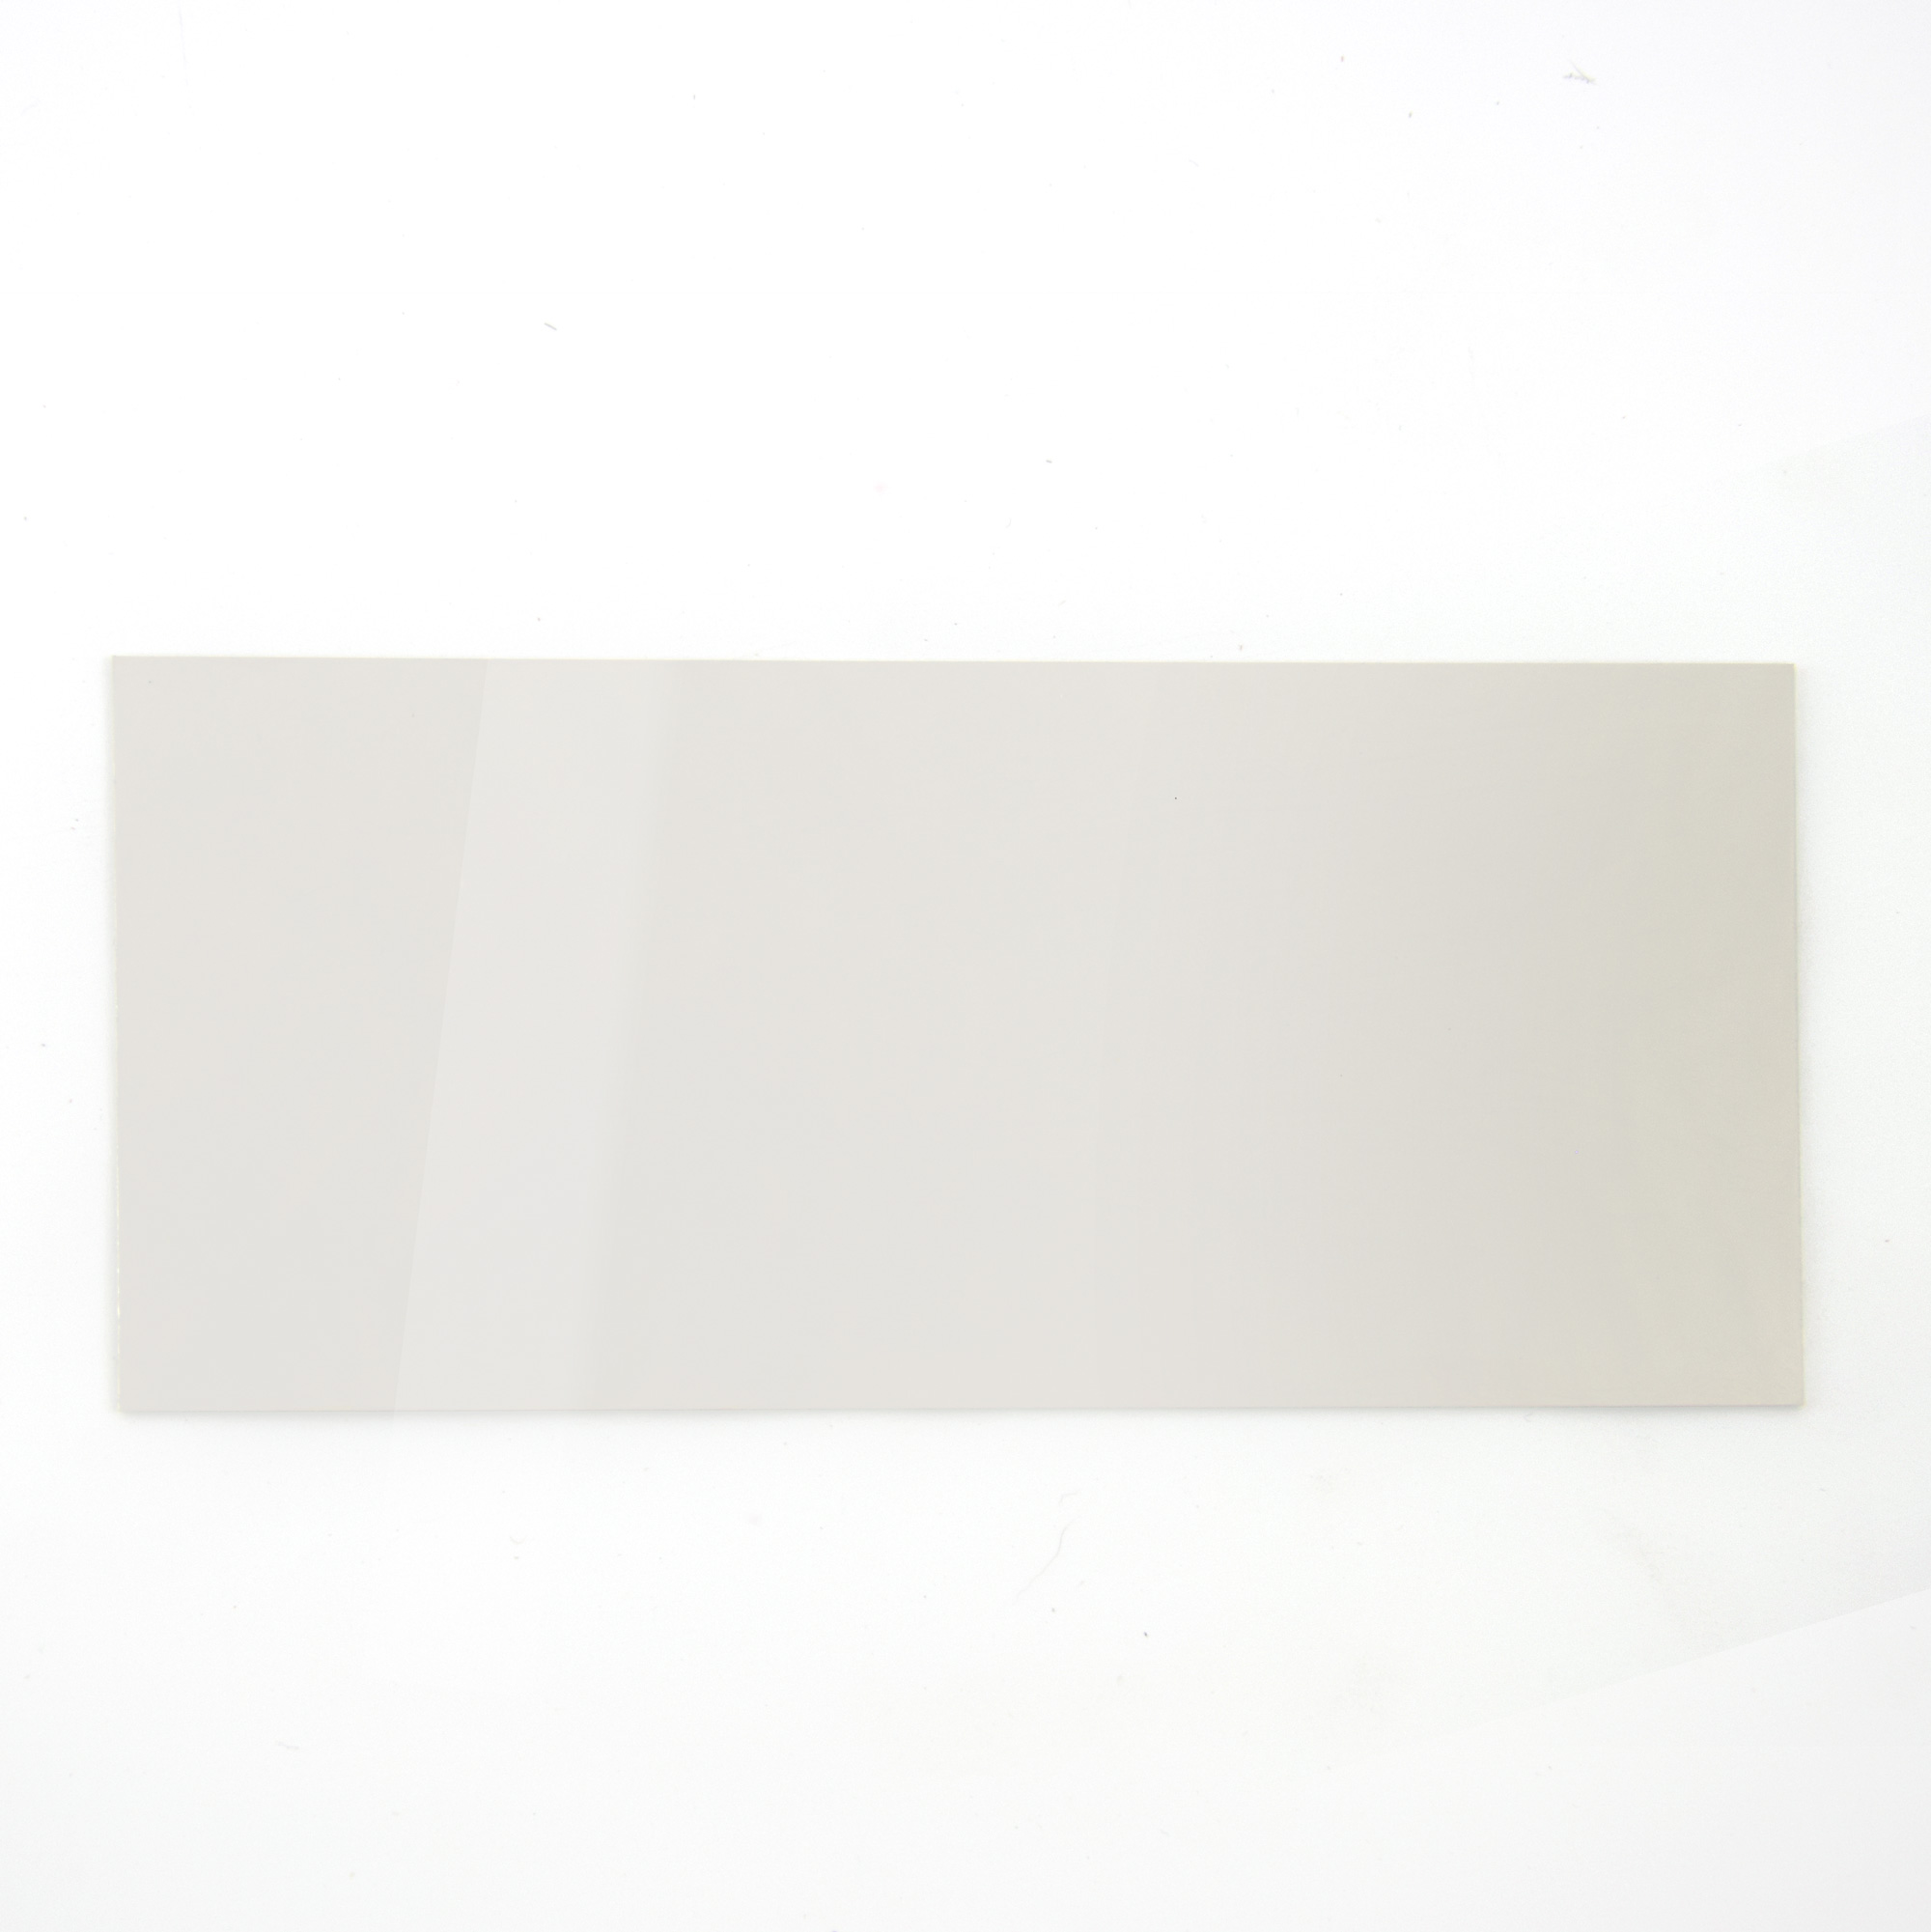 Mirror finish stainless steel - sample